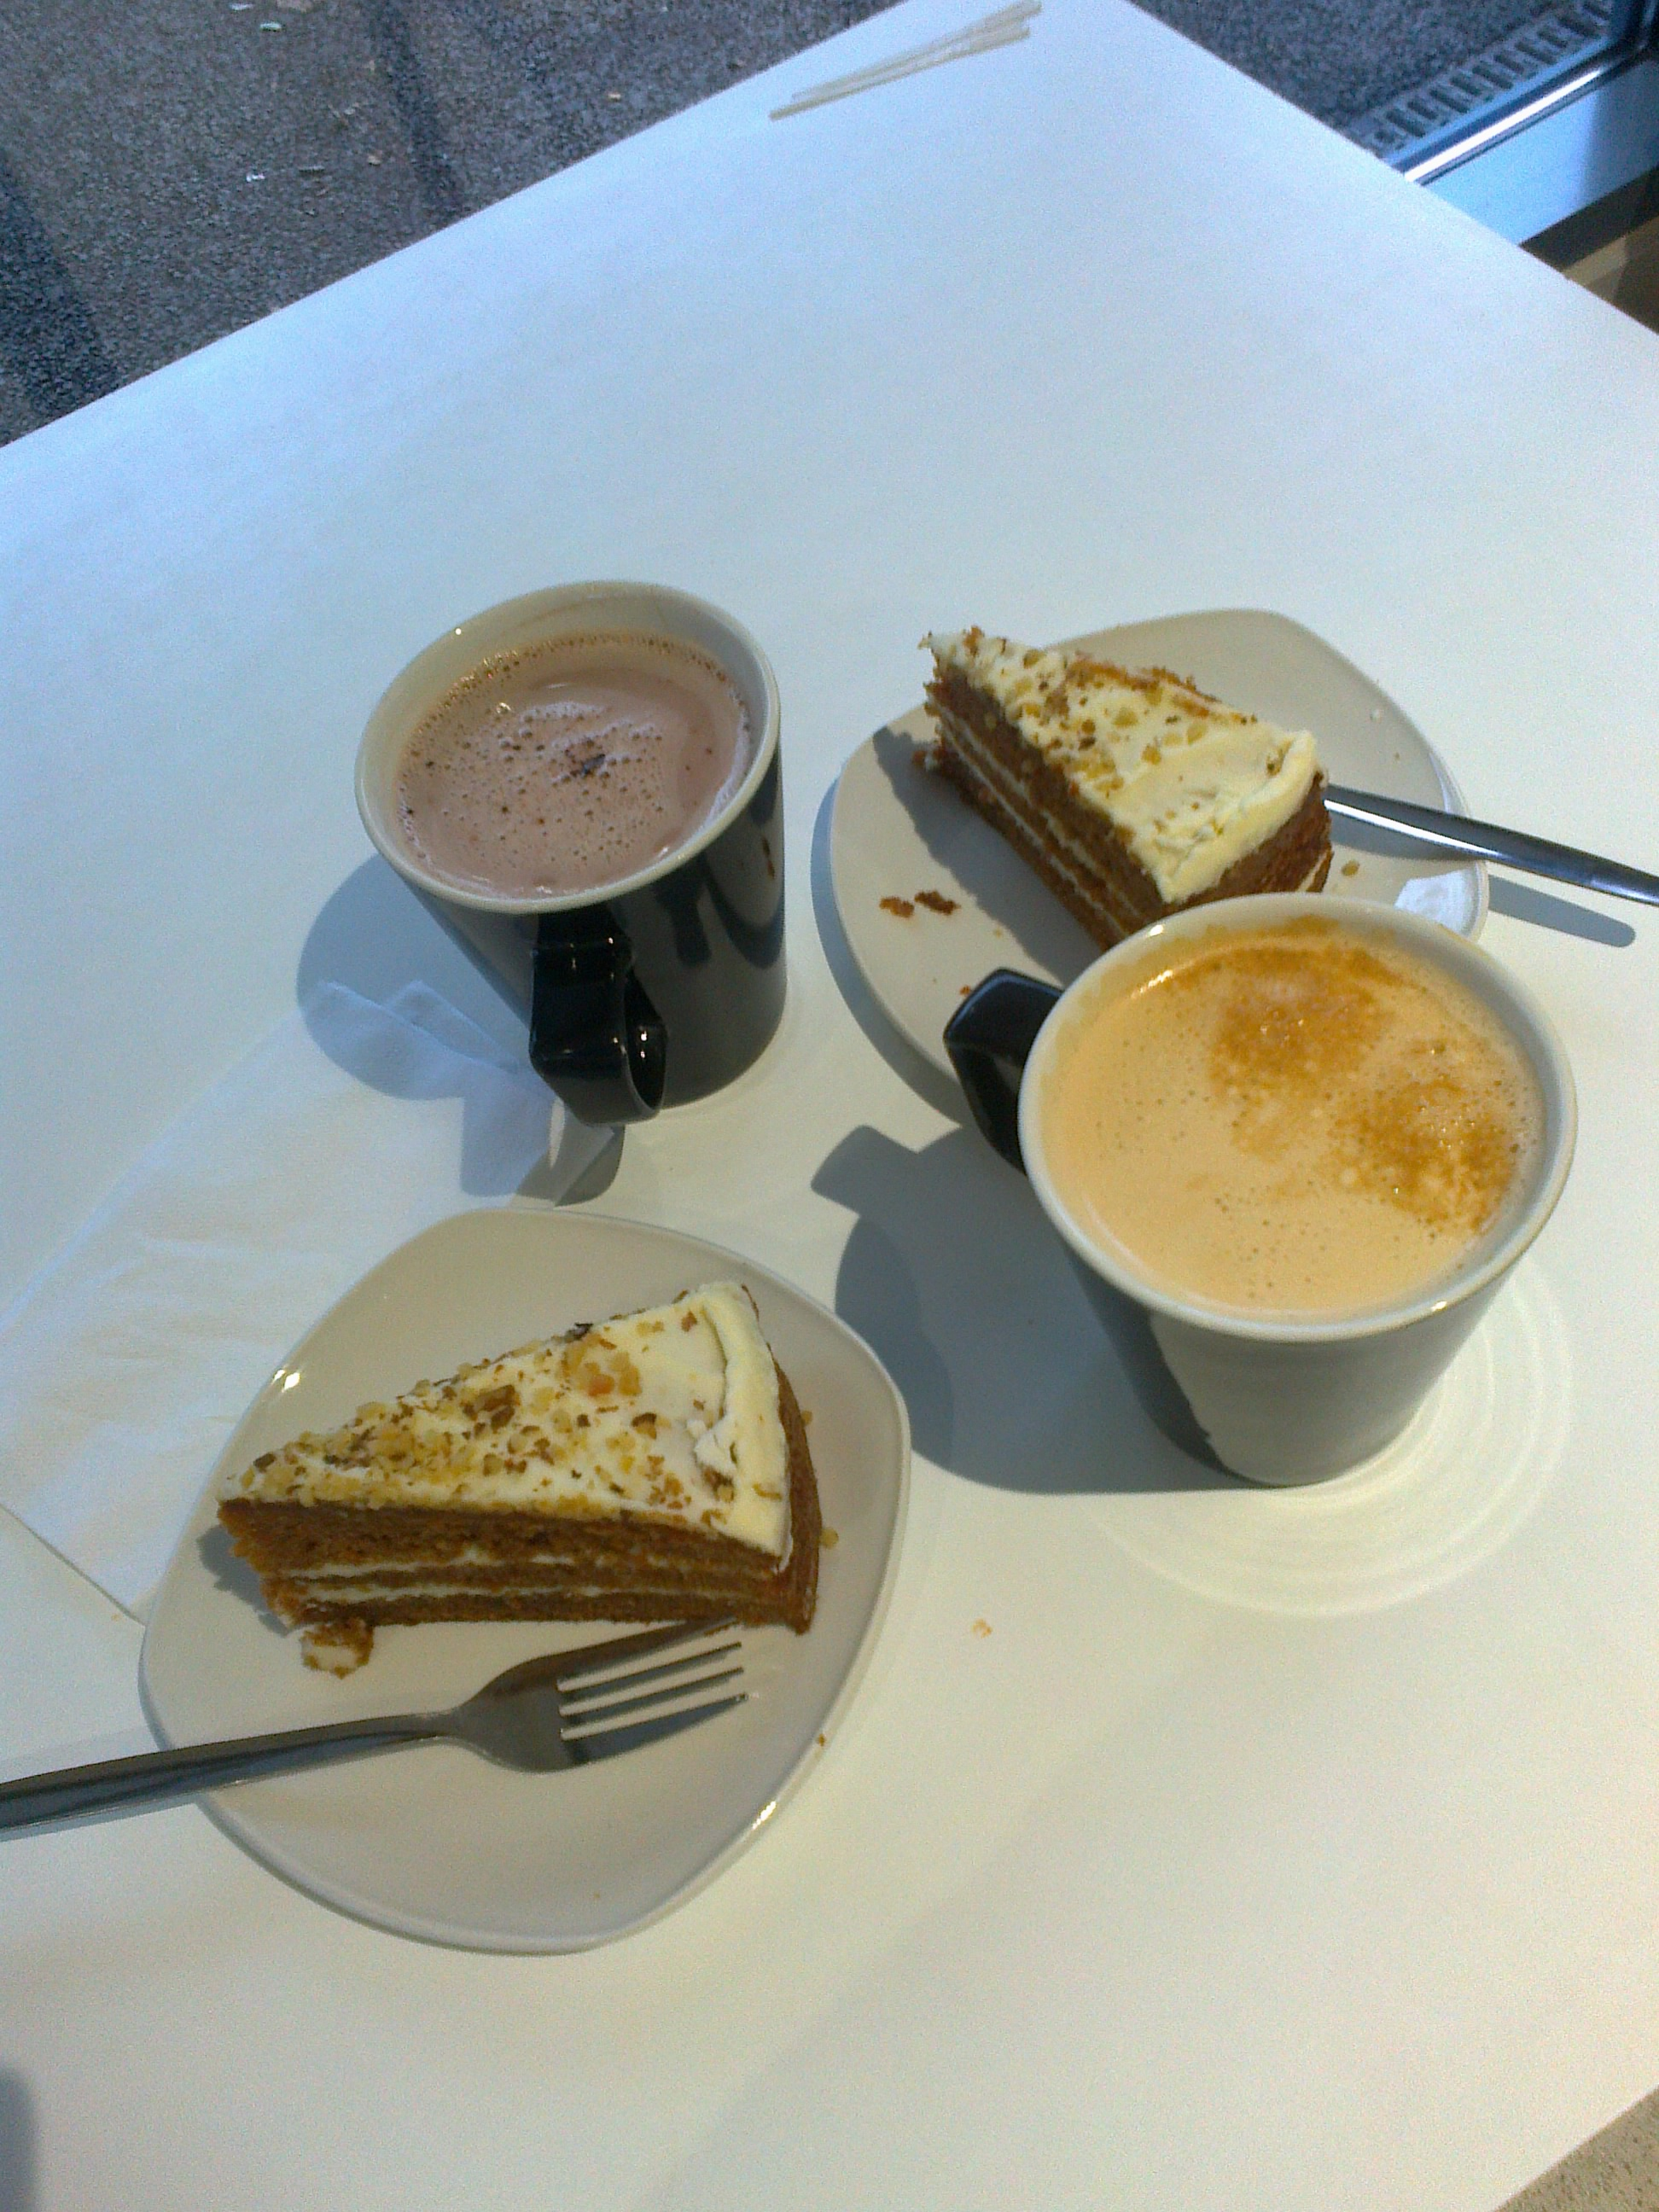 I Have A Coffee & Cake Fund